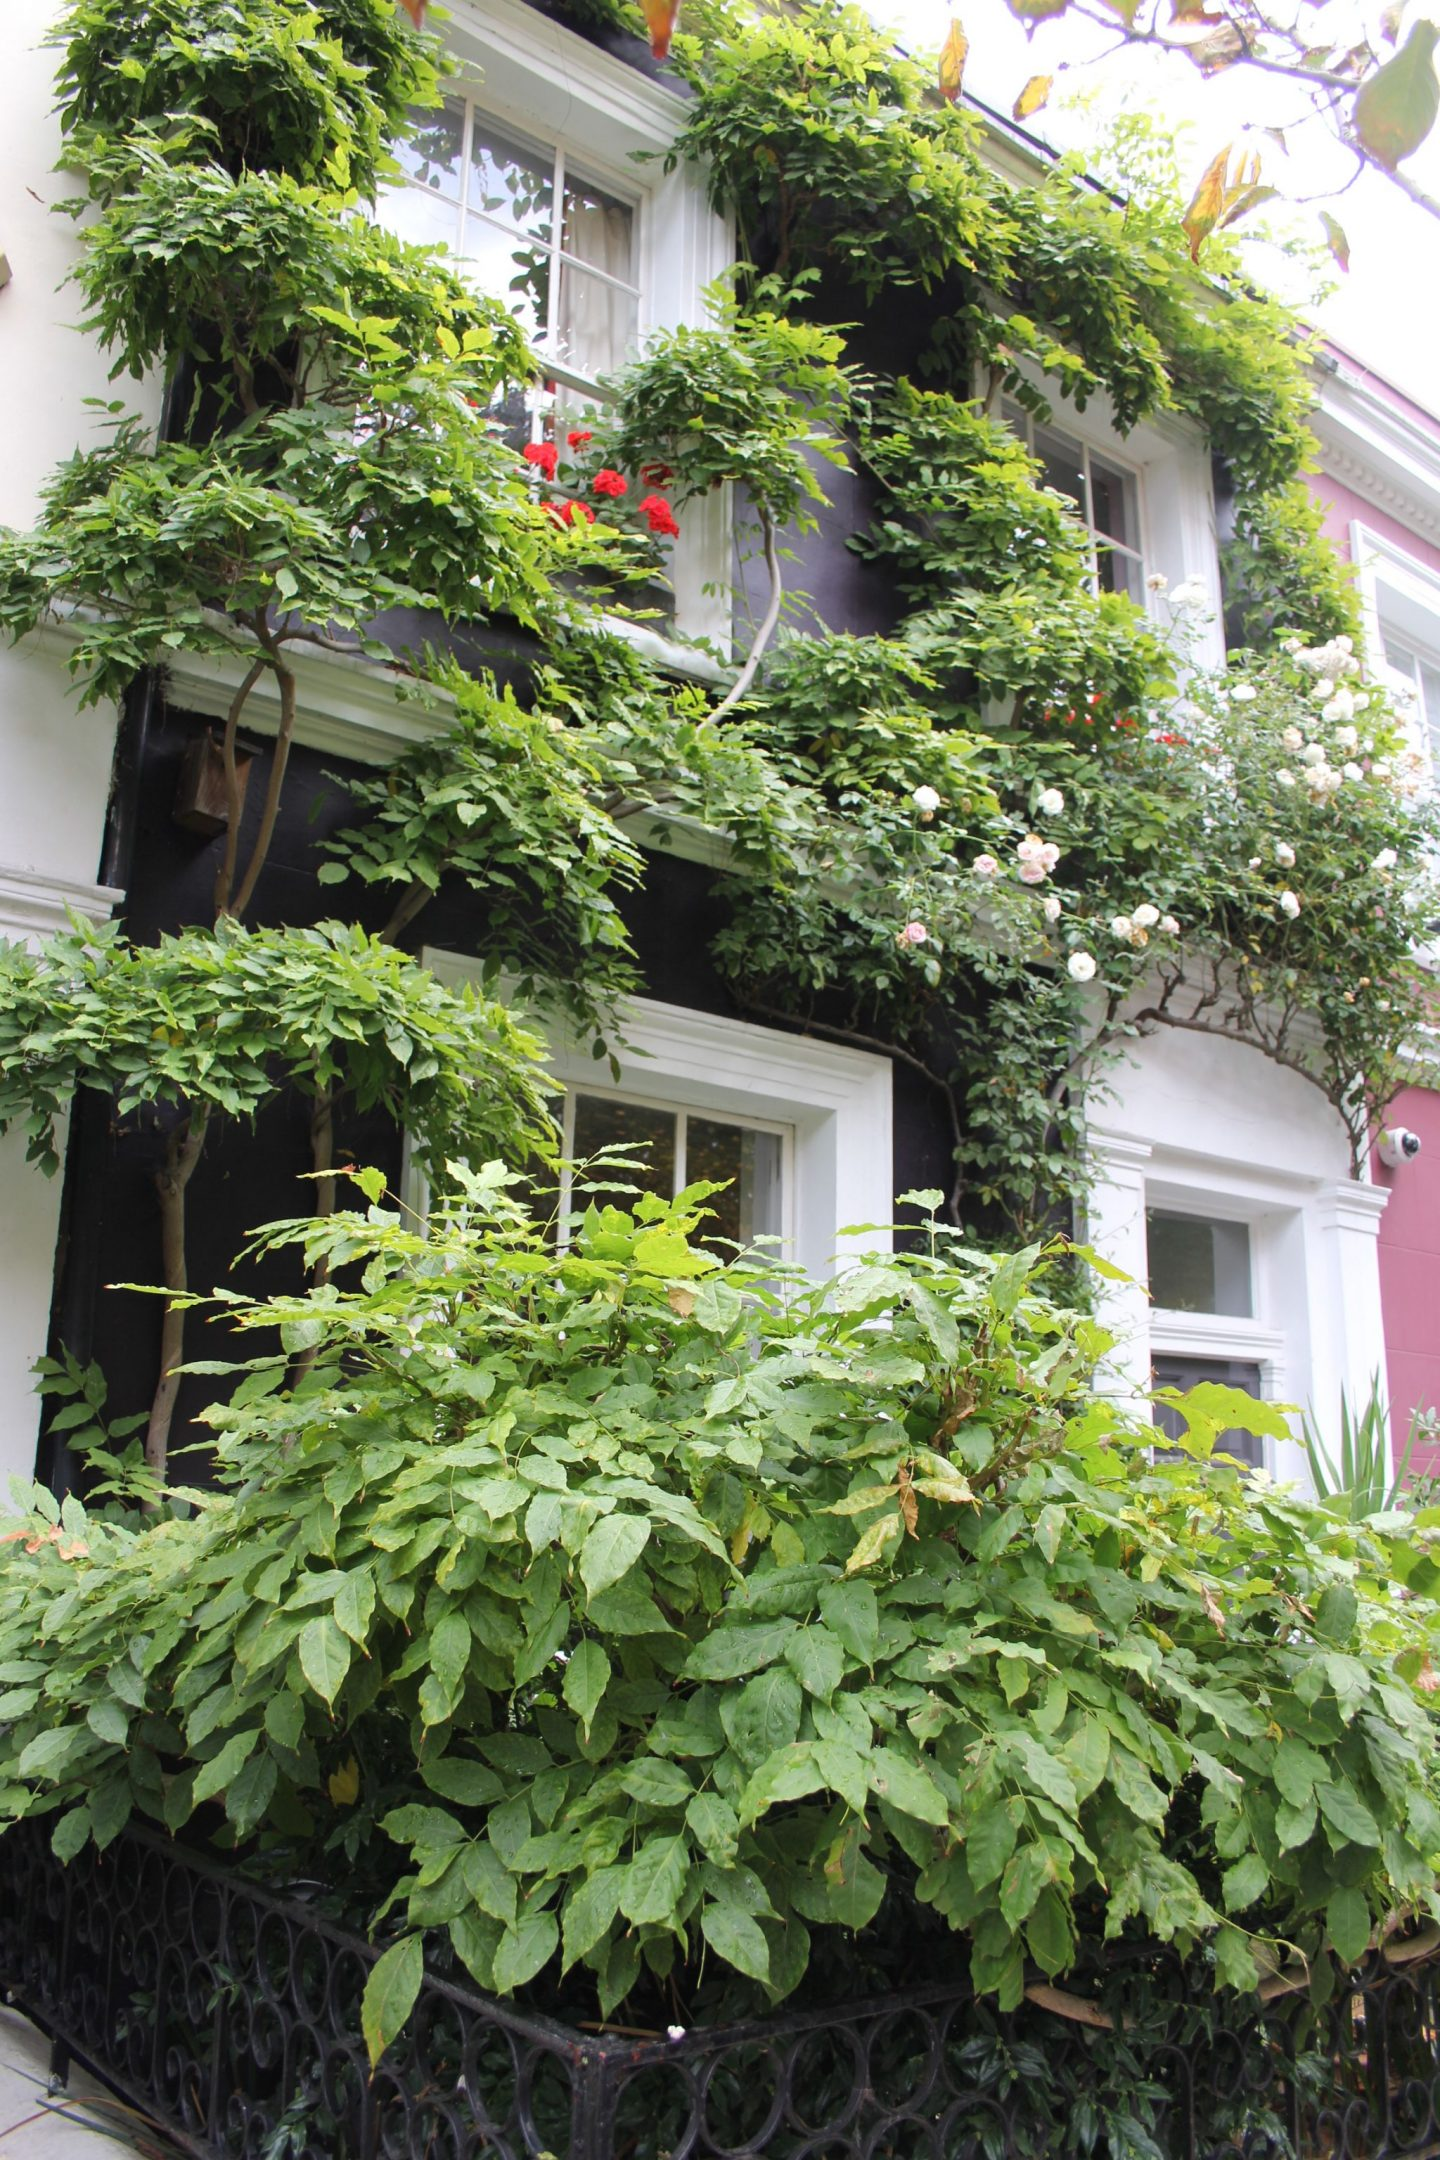 Stunning and romantic vine covered home in Notting Hill. Hello Lovely Studio. Come tour these gorgeous front doors in Notting Hill and Holland Park...certainly lovely indeed. Curb appeal and Paint Color Inspiration. Lovely London Doors & Paint Color Ideas!